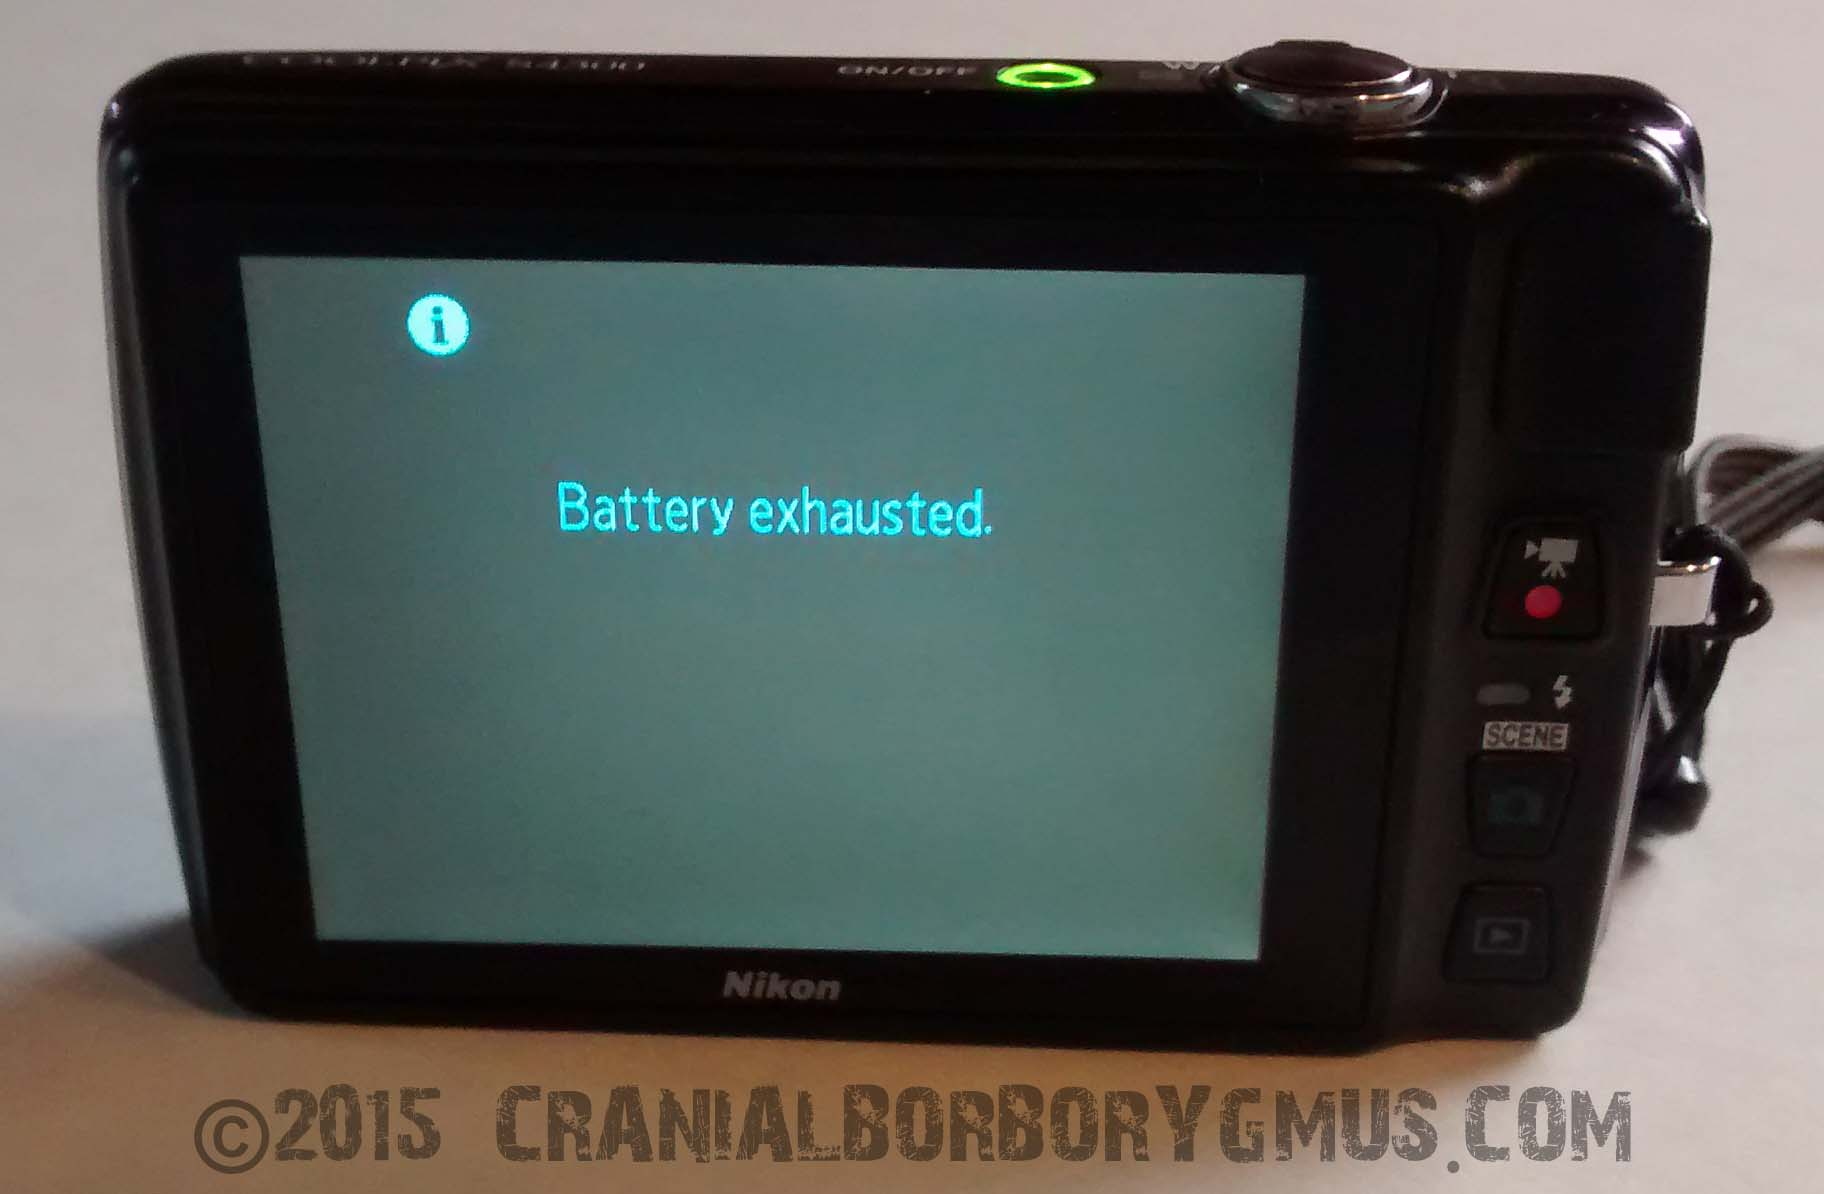 battery exhausted message on nikon coolpix digital camera